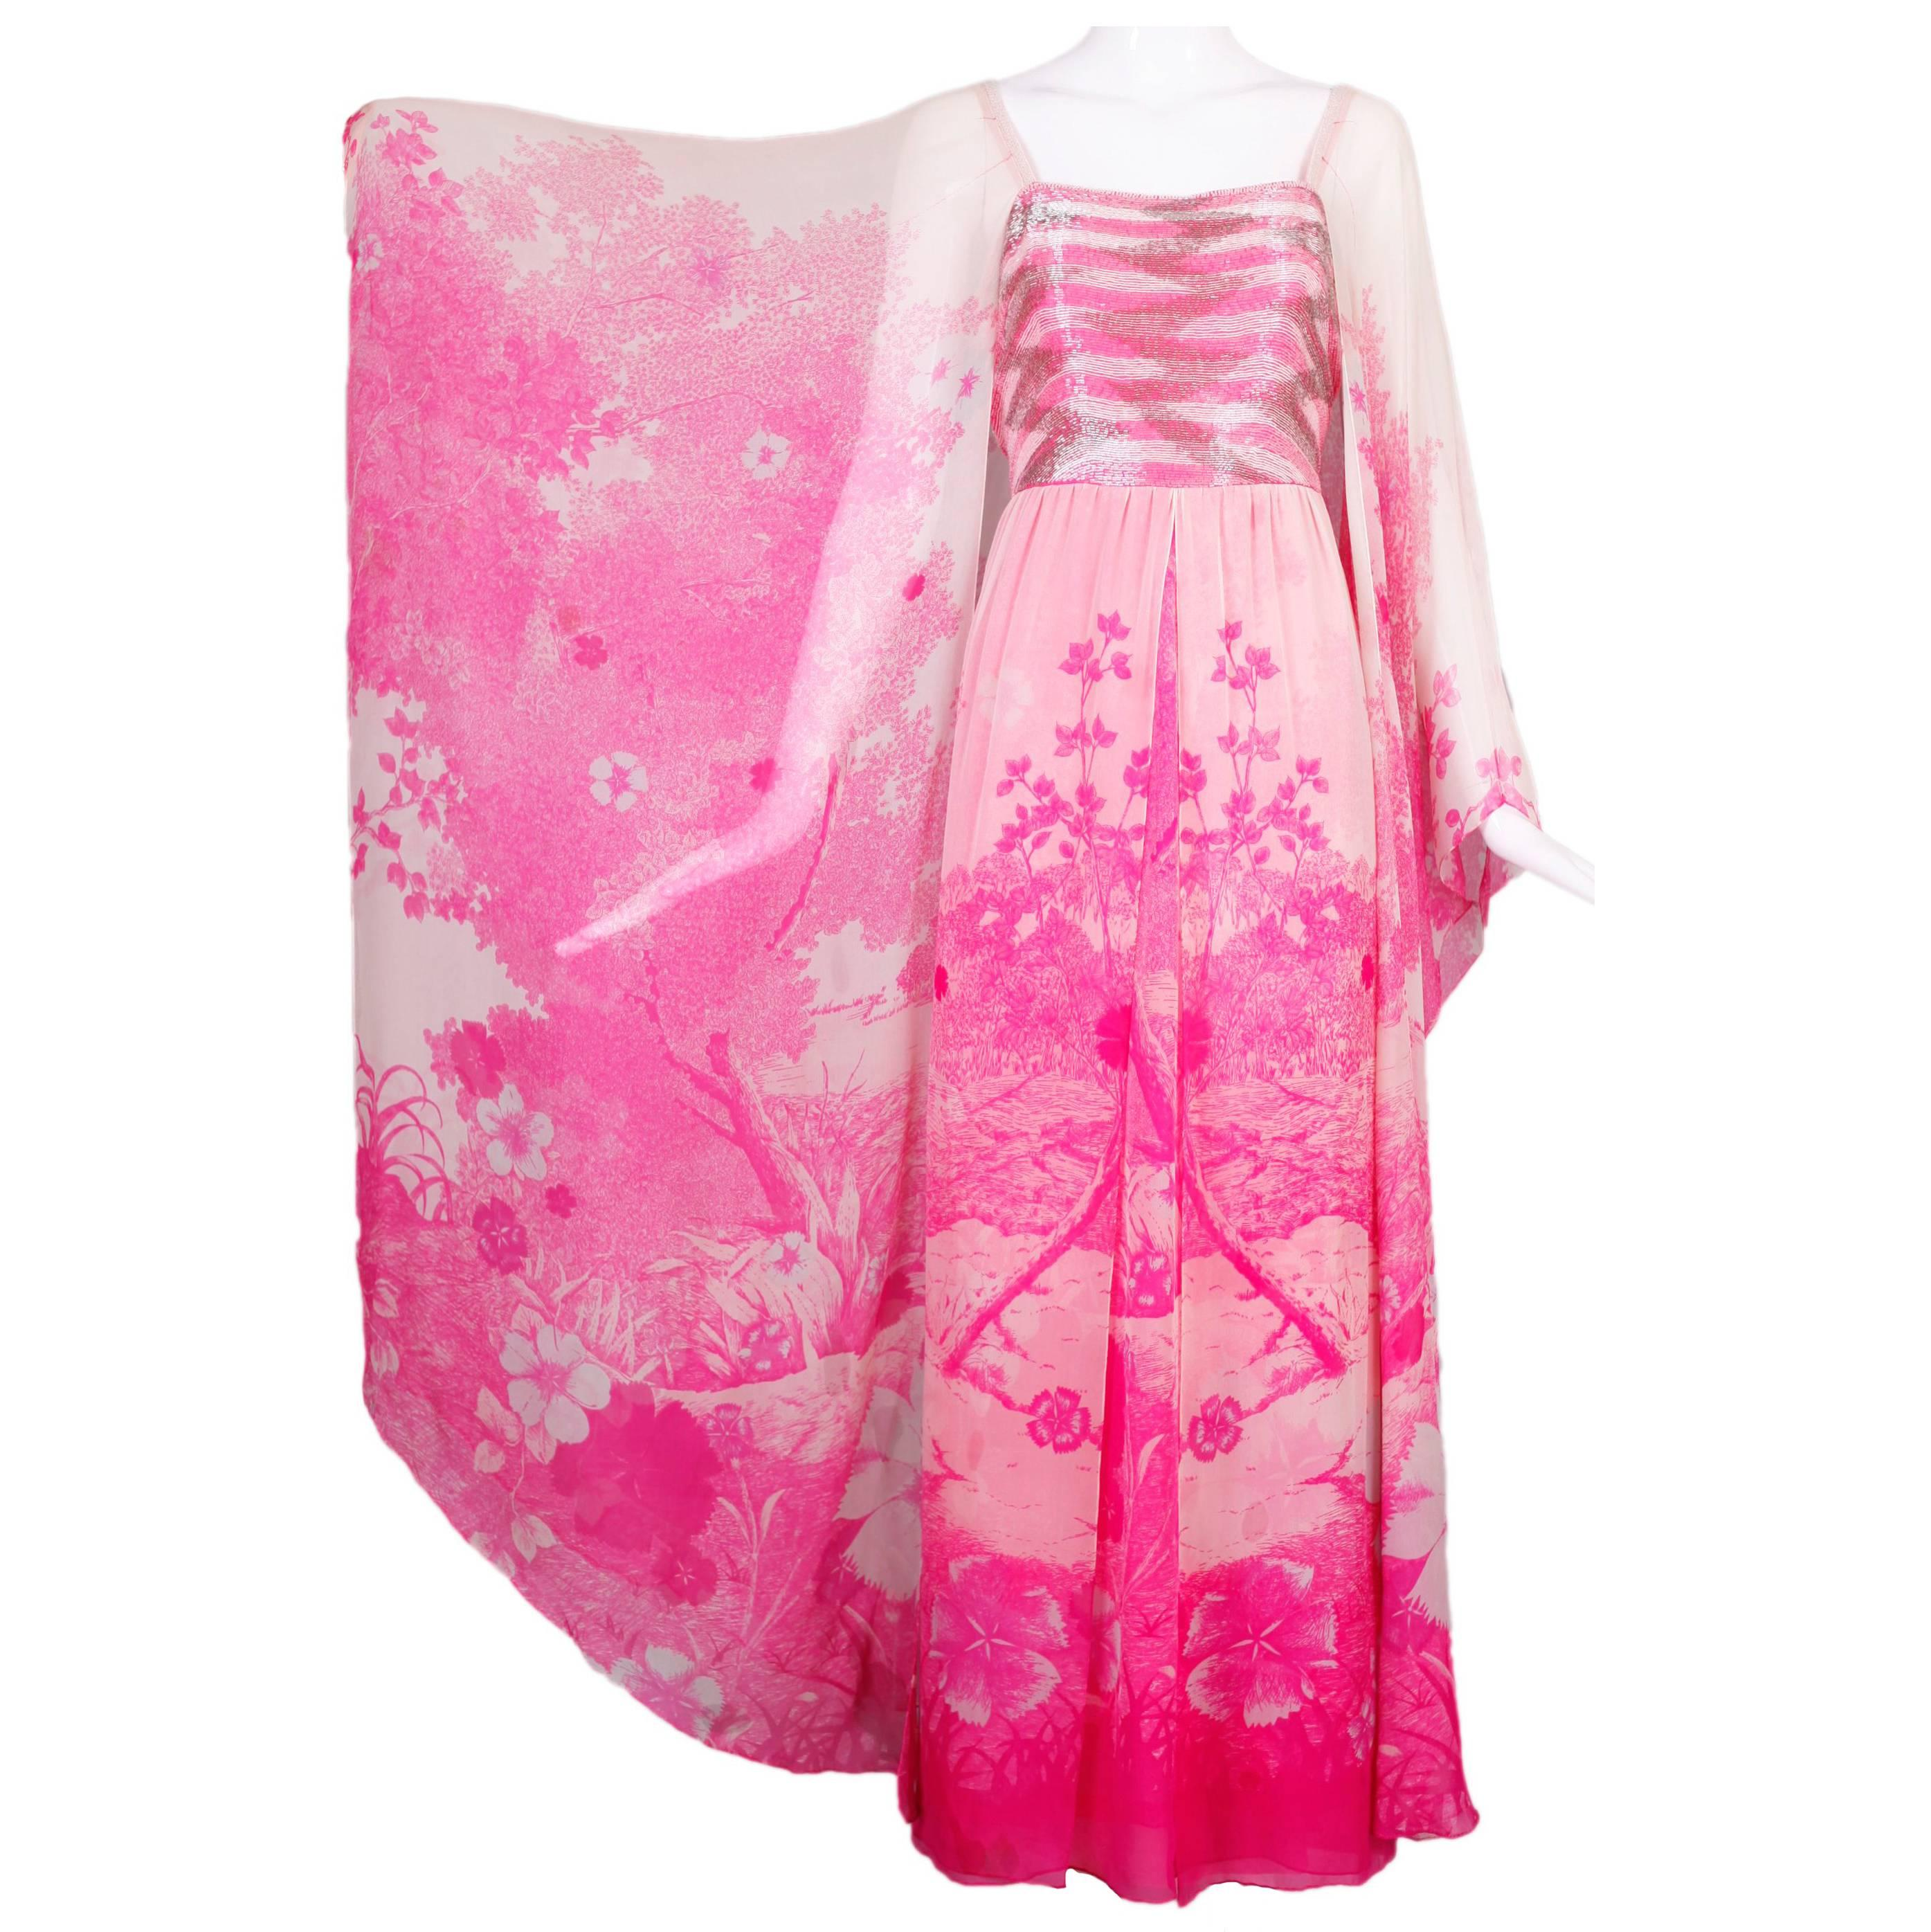 1970's Hanae Mori Couture Pink Chiffon Beaded Floral Print Evening Gown